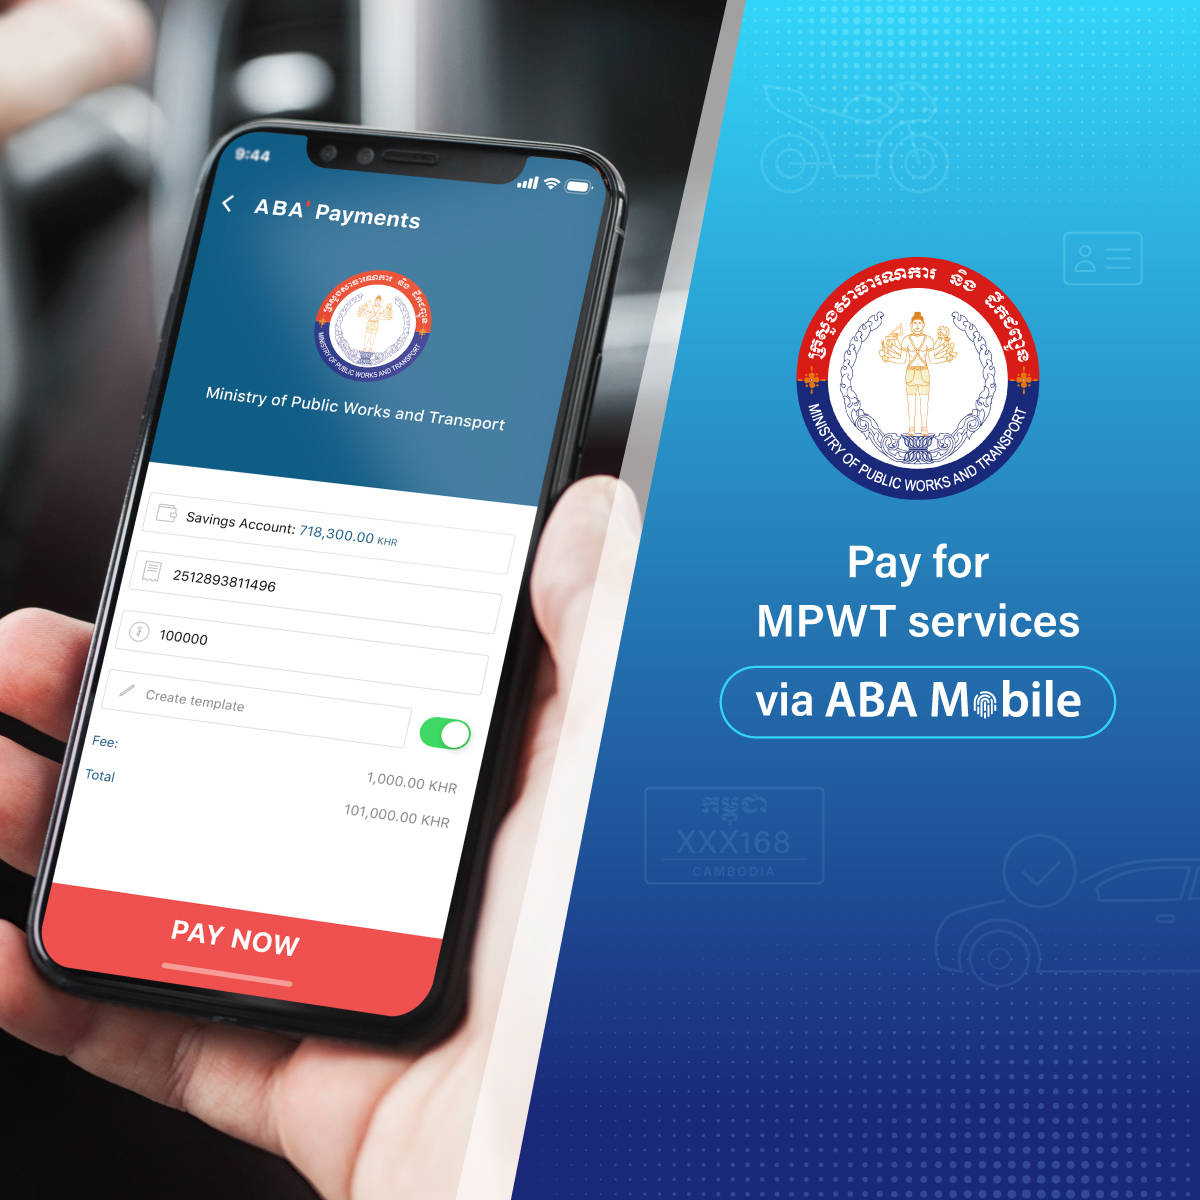 ABA​ enables​ mobile​ payments​ for​ services​ of​ the​ Ministry​ of​ Public​ Works​ and​ Transport